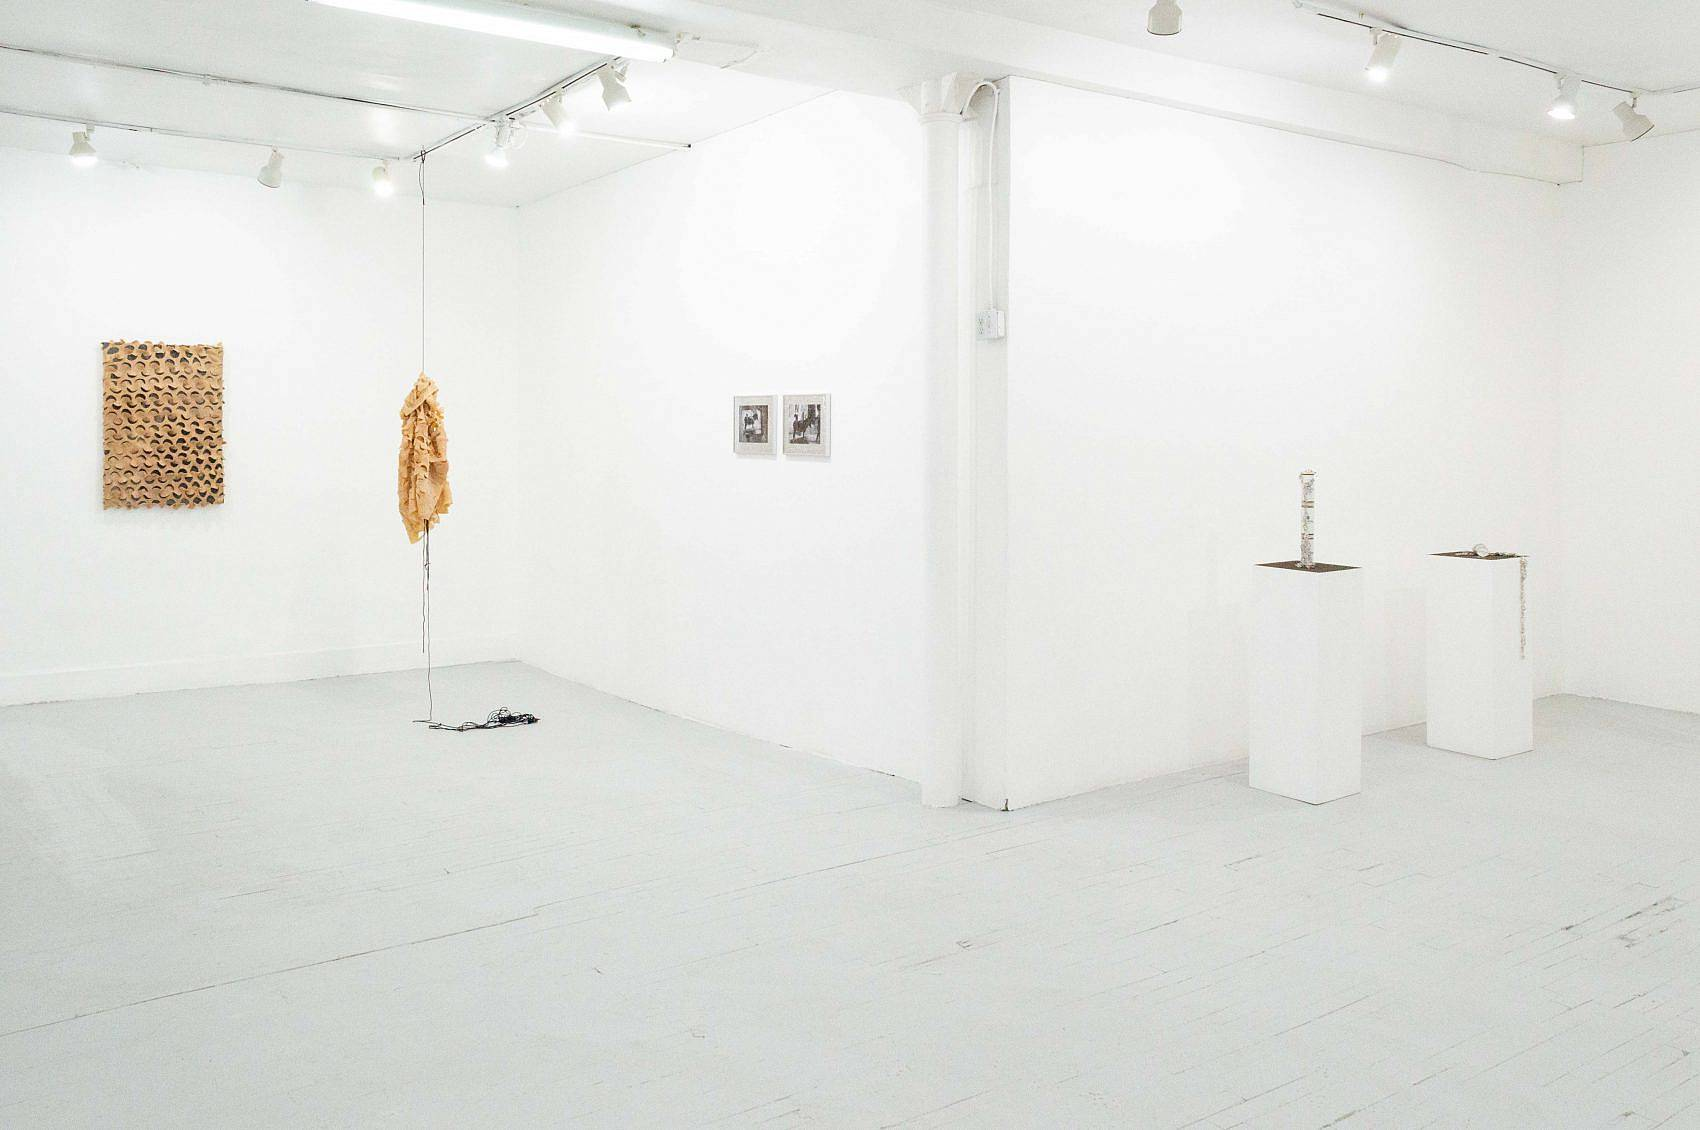 This is an installation shot of the exhibition. To the left is the hanging piece from Zack Ingram's